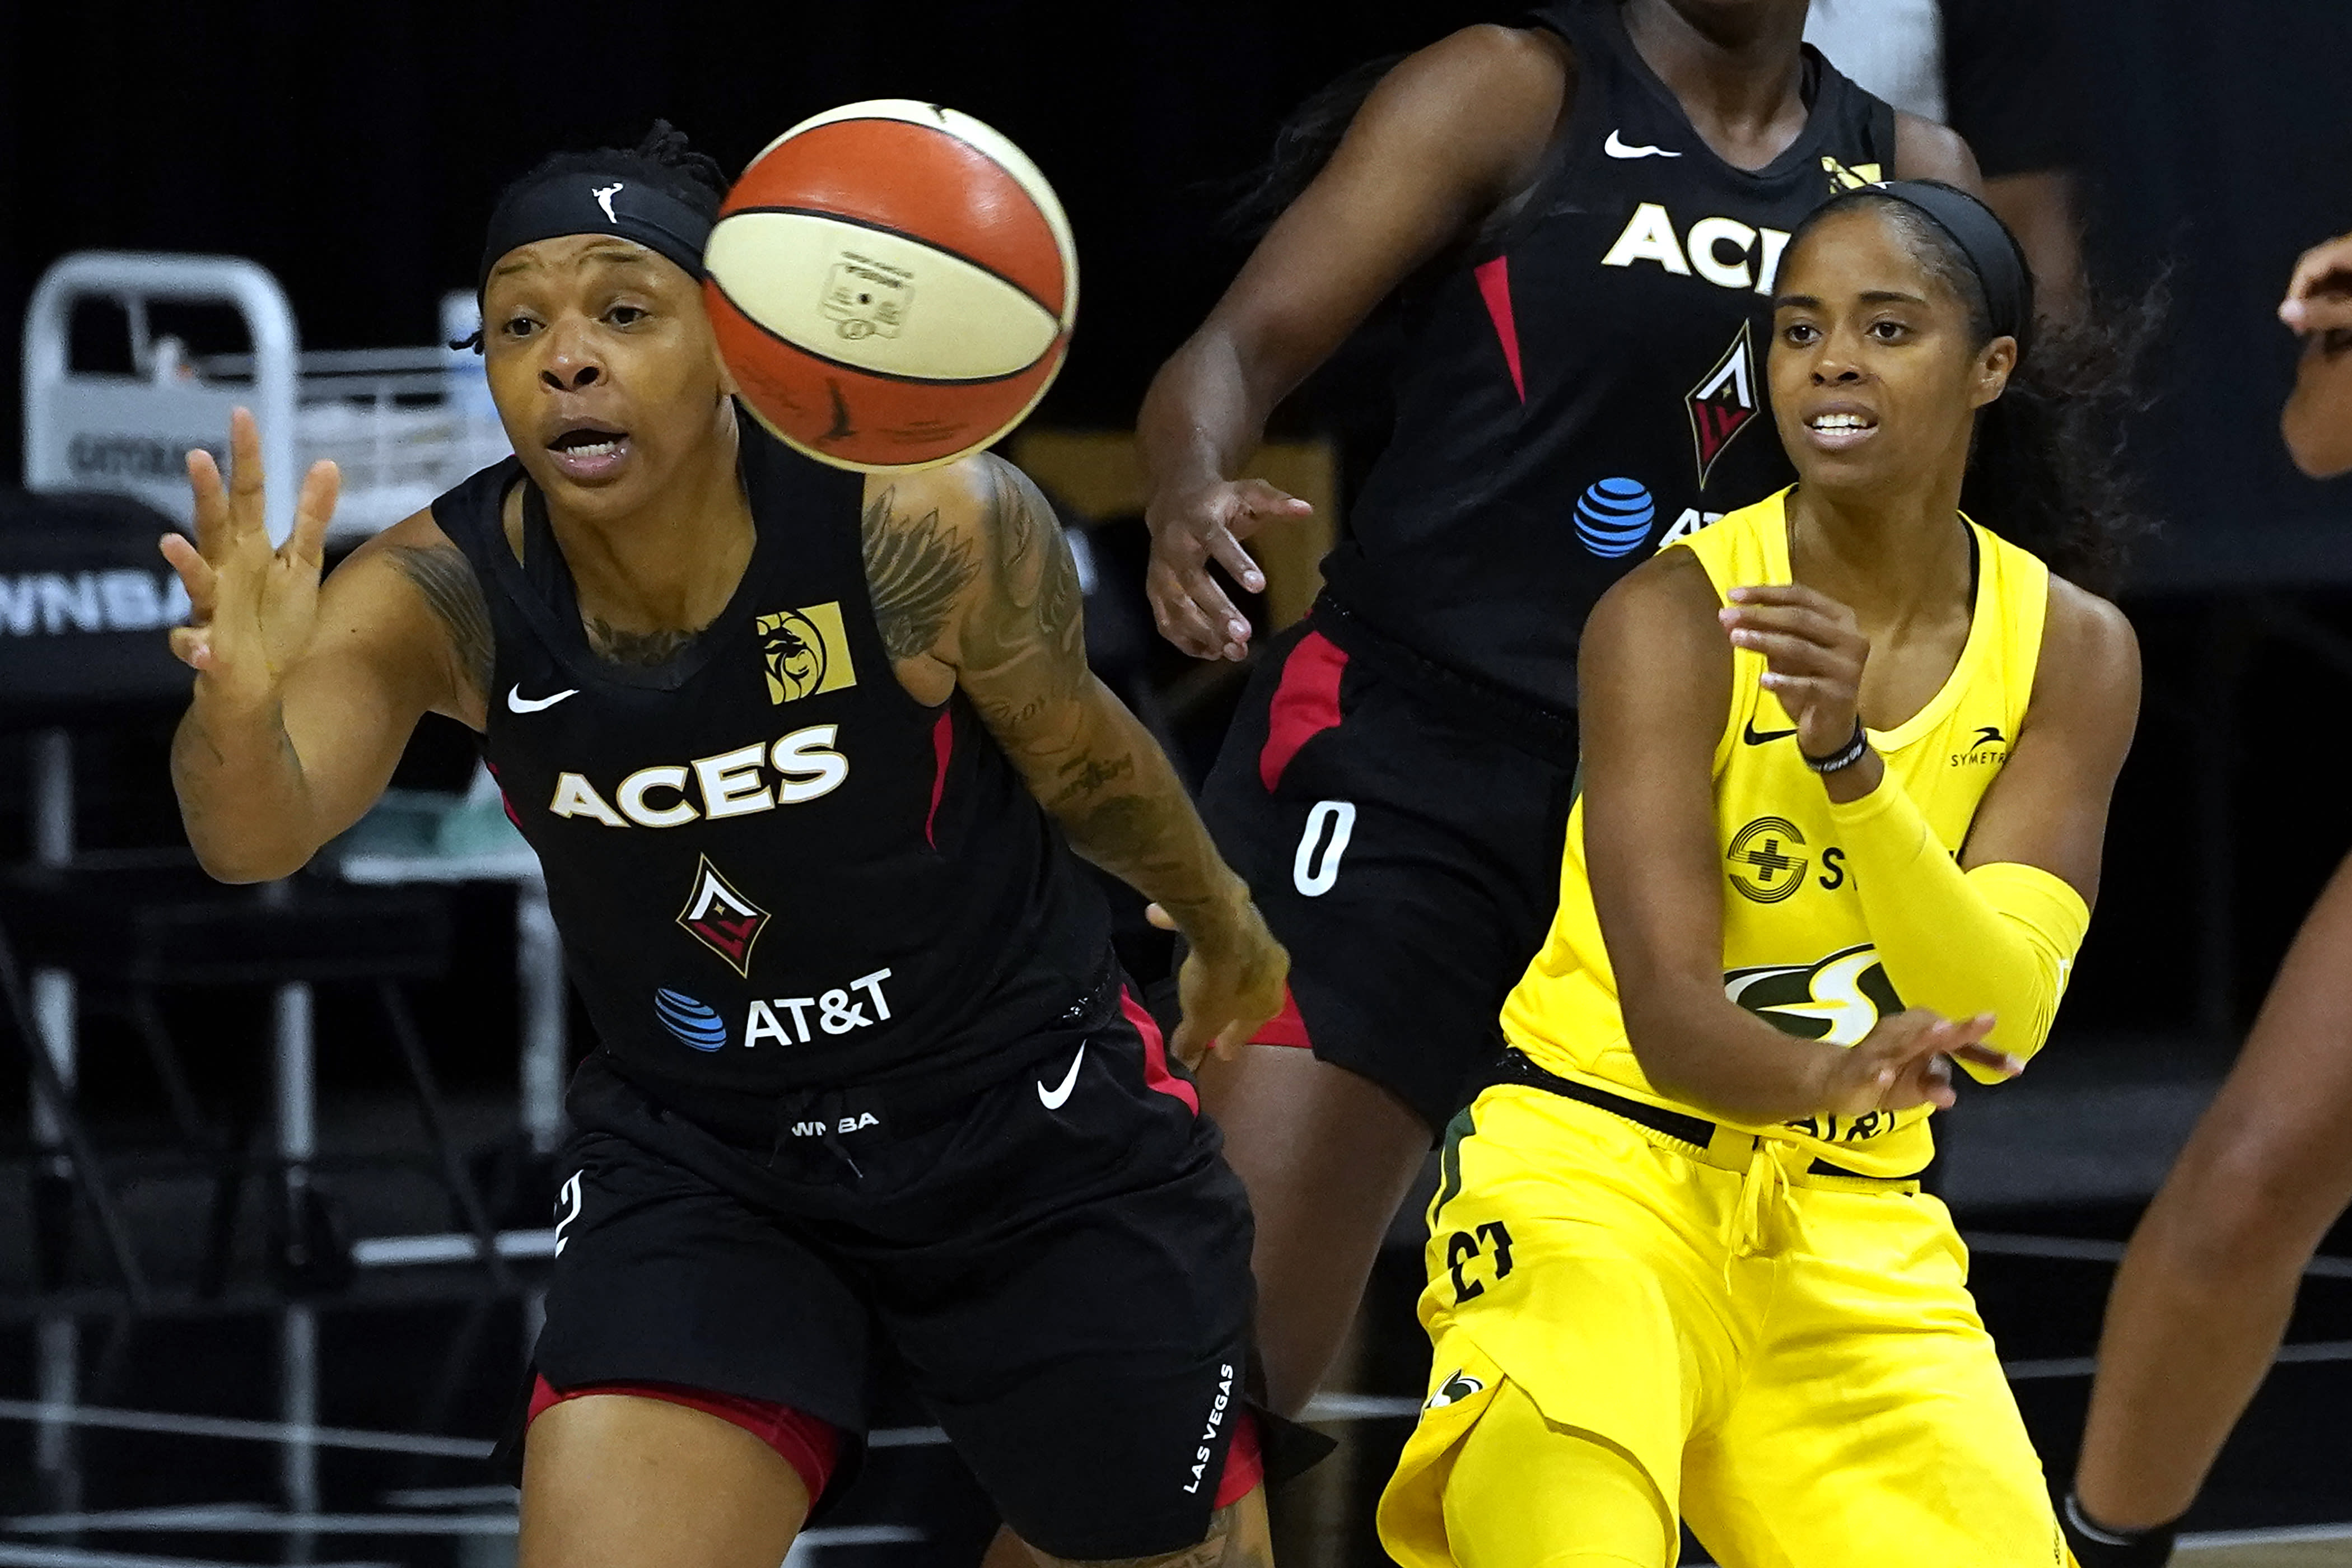 Seattle Storm guard Jordin Canada (21) works against Las Vegas Aces forward Emma Cannon during the first half of Game 1 of basketball's WNBA Finals on Friday, Oct. 2, 2020, in Bradenton, Fla. (AP Photo/Chris O'Meara)